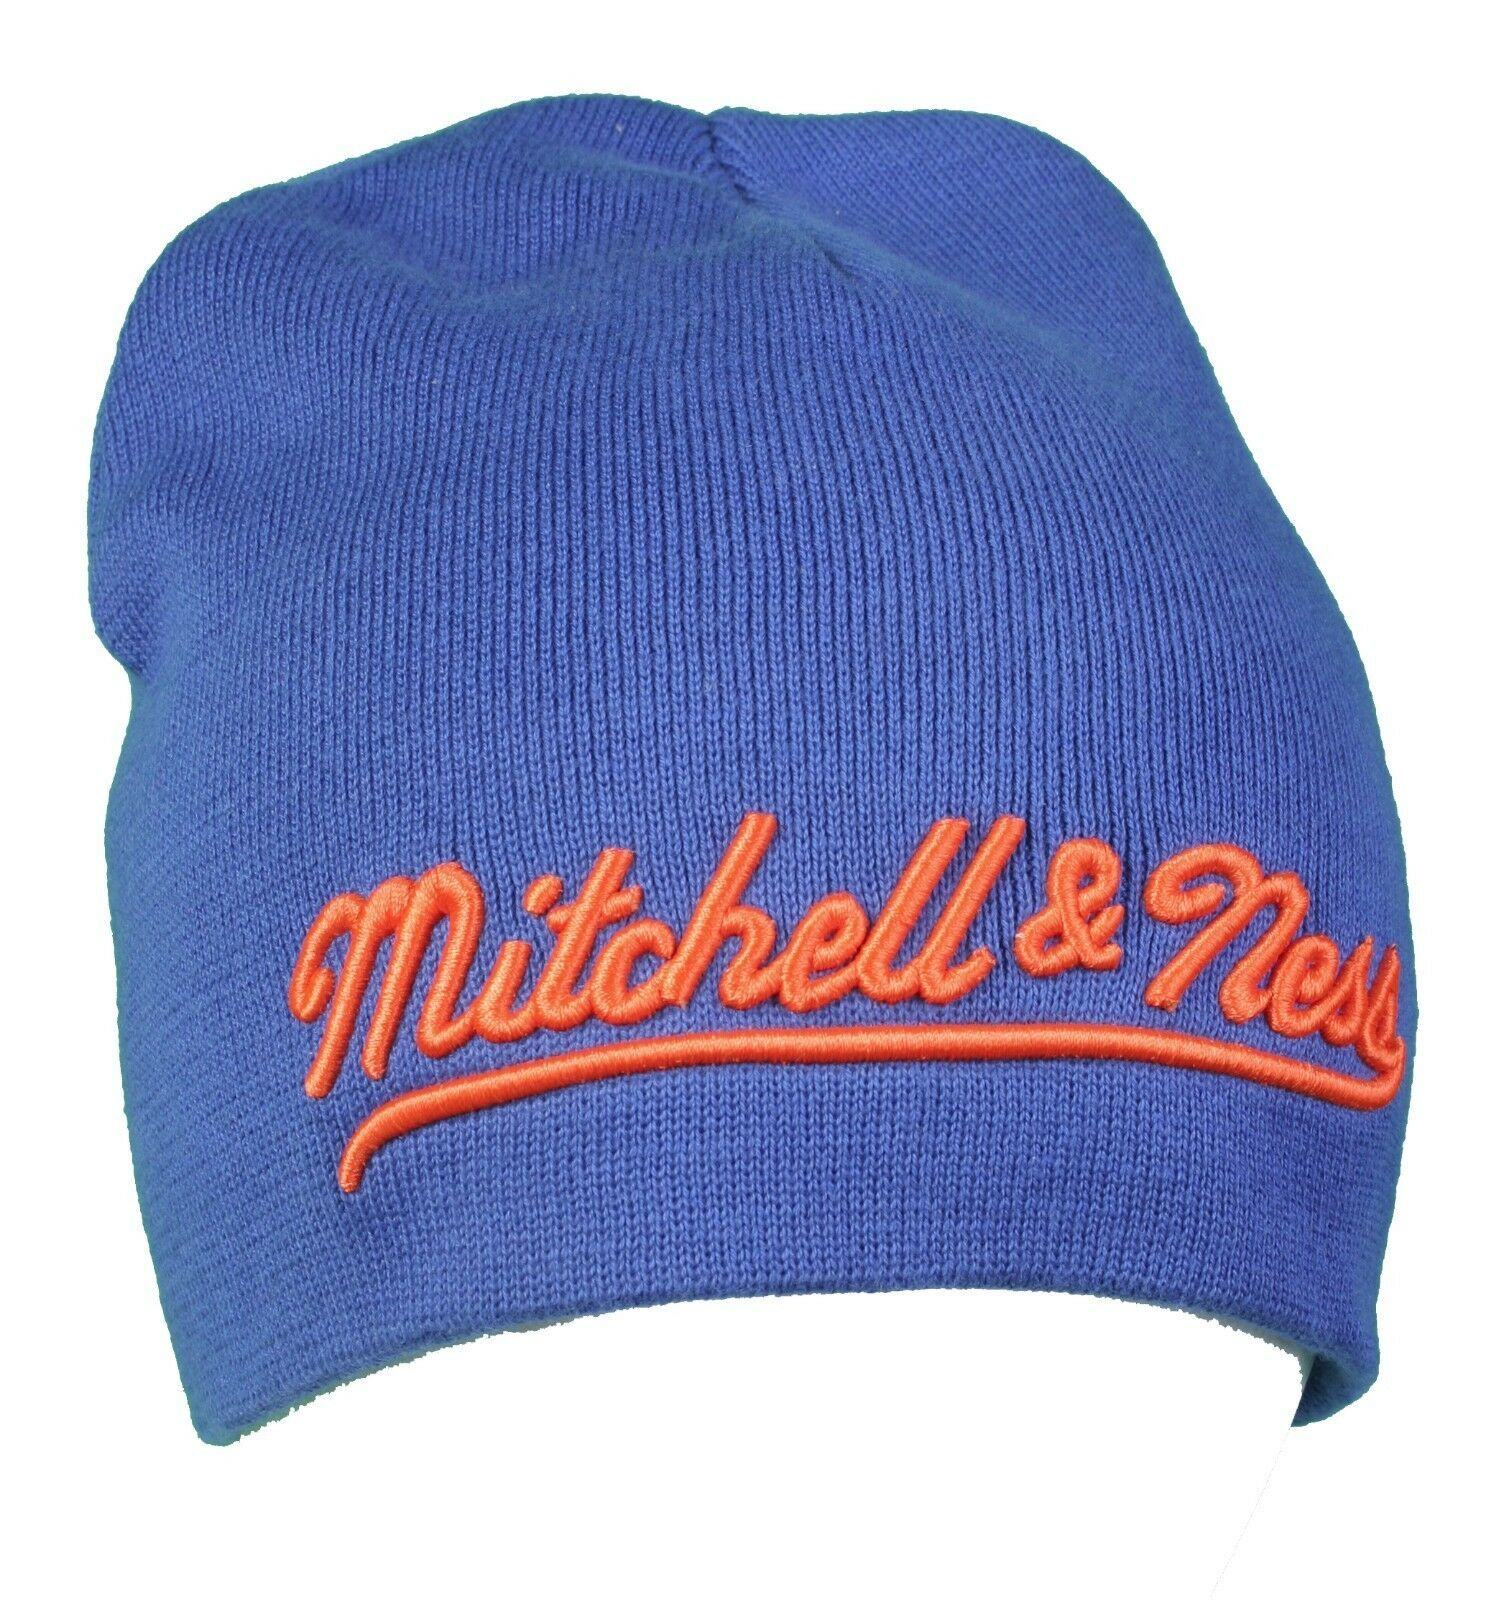 Mitchell & Ness Royal Blue Orange Est 1904  New York Knick Color-Way Beanie NWT